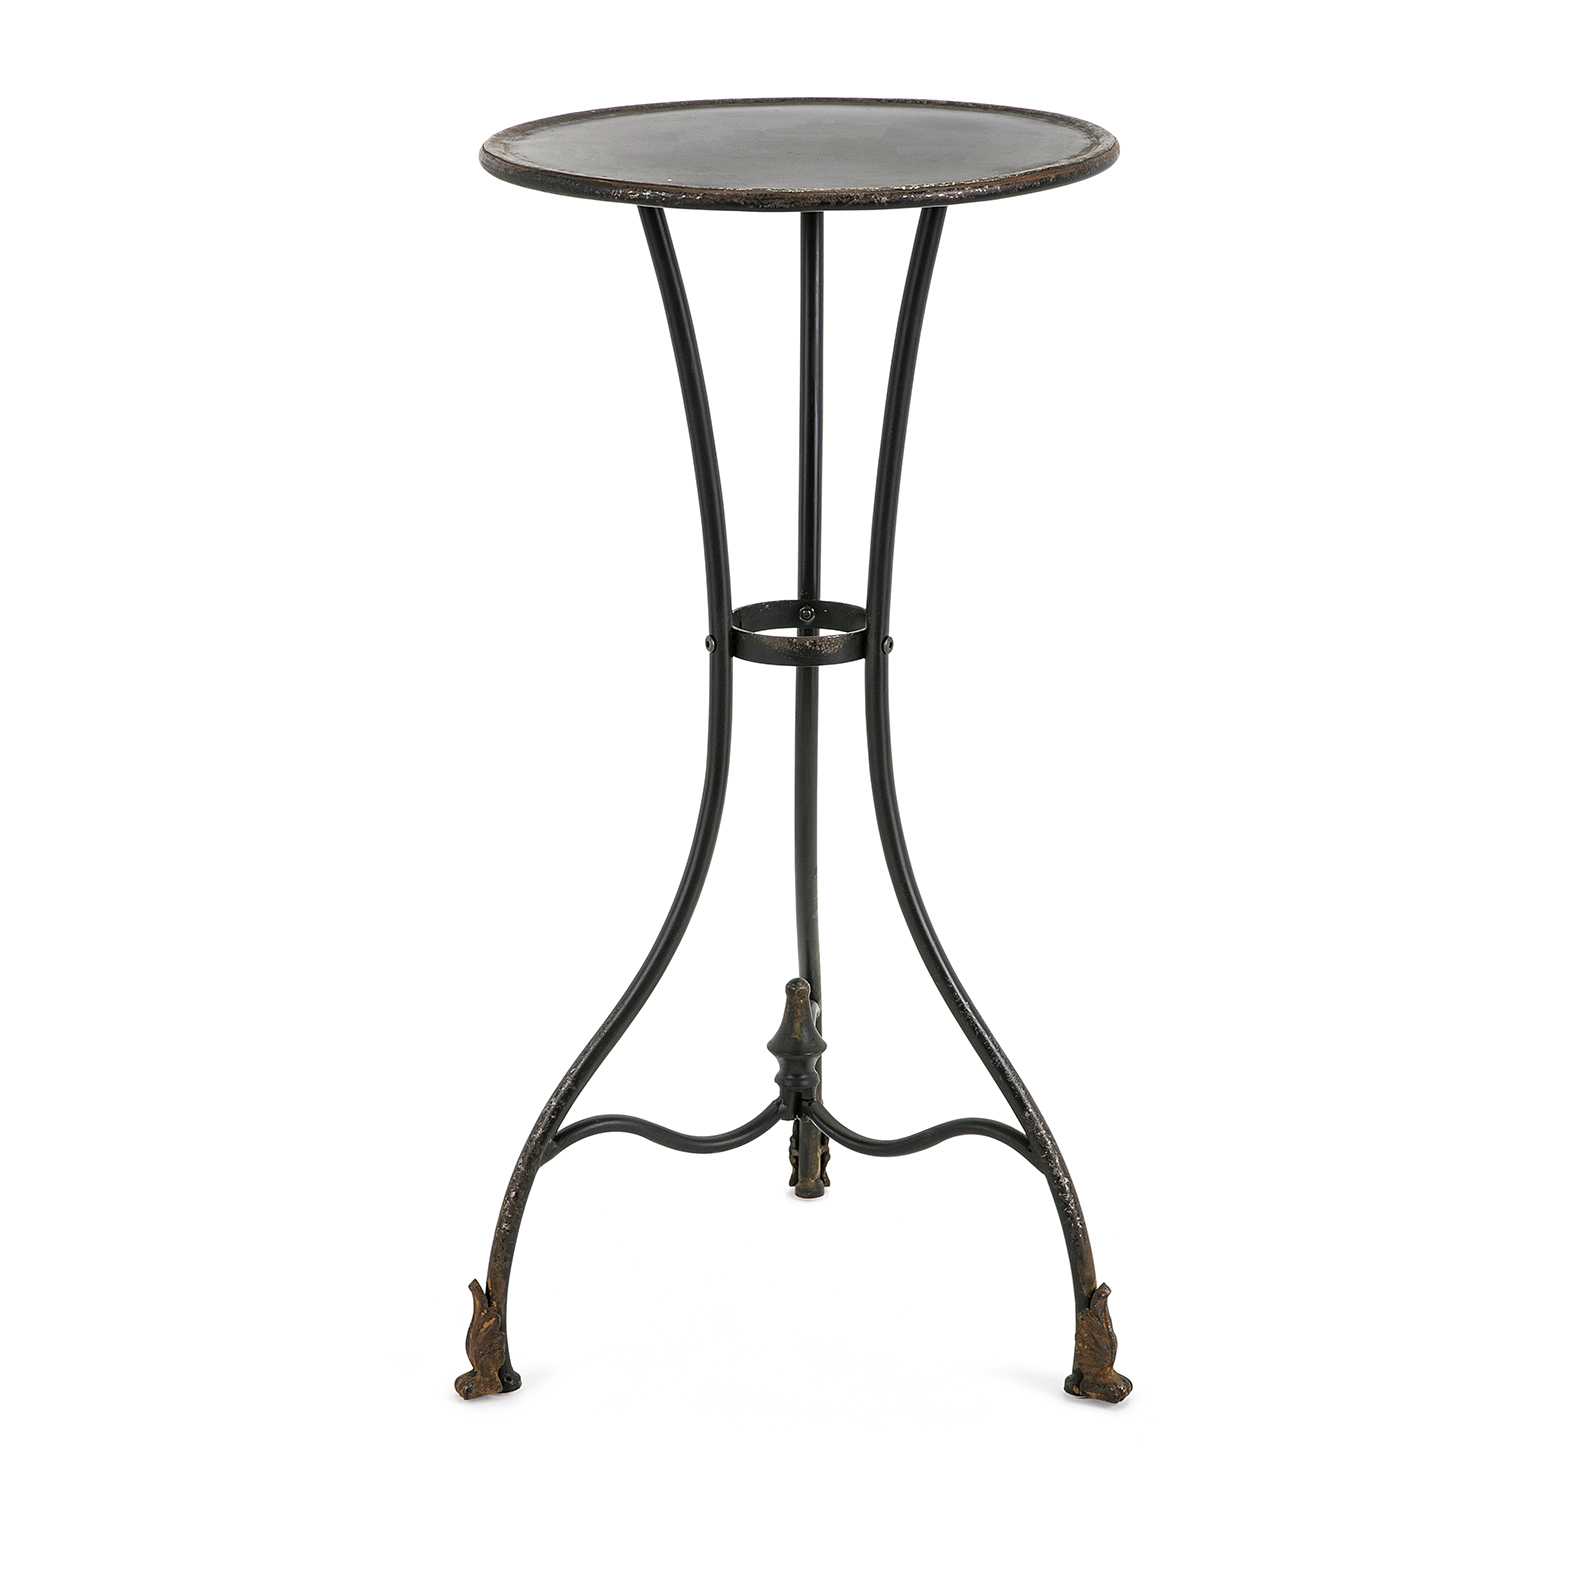 cliffton large metal accent table roost and galley slim round black tables for living room small spaces marble coffee toronto drawer pulls knobs home decoration things vintage